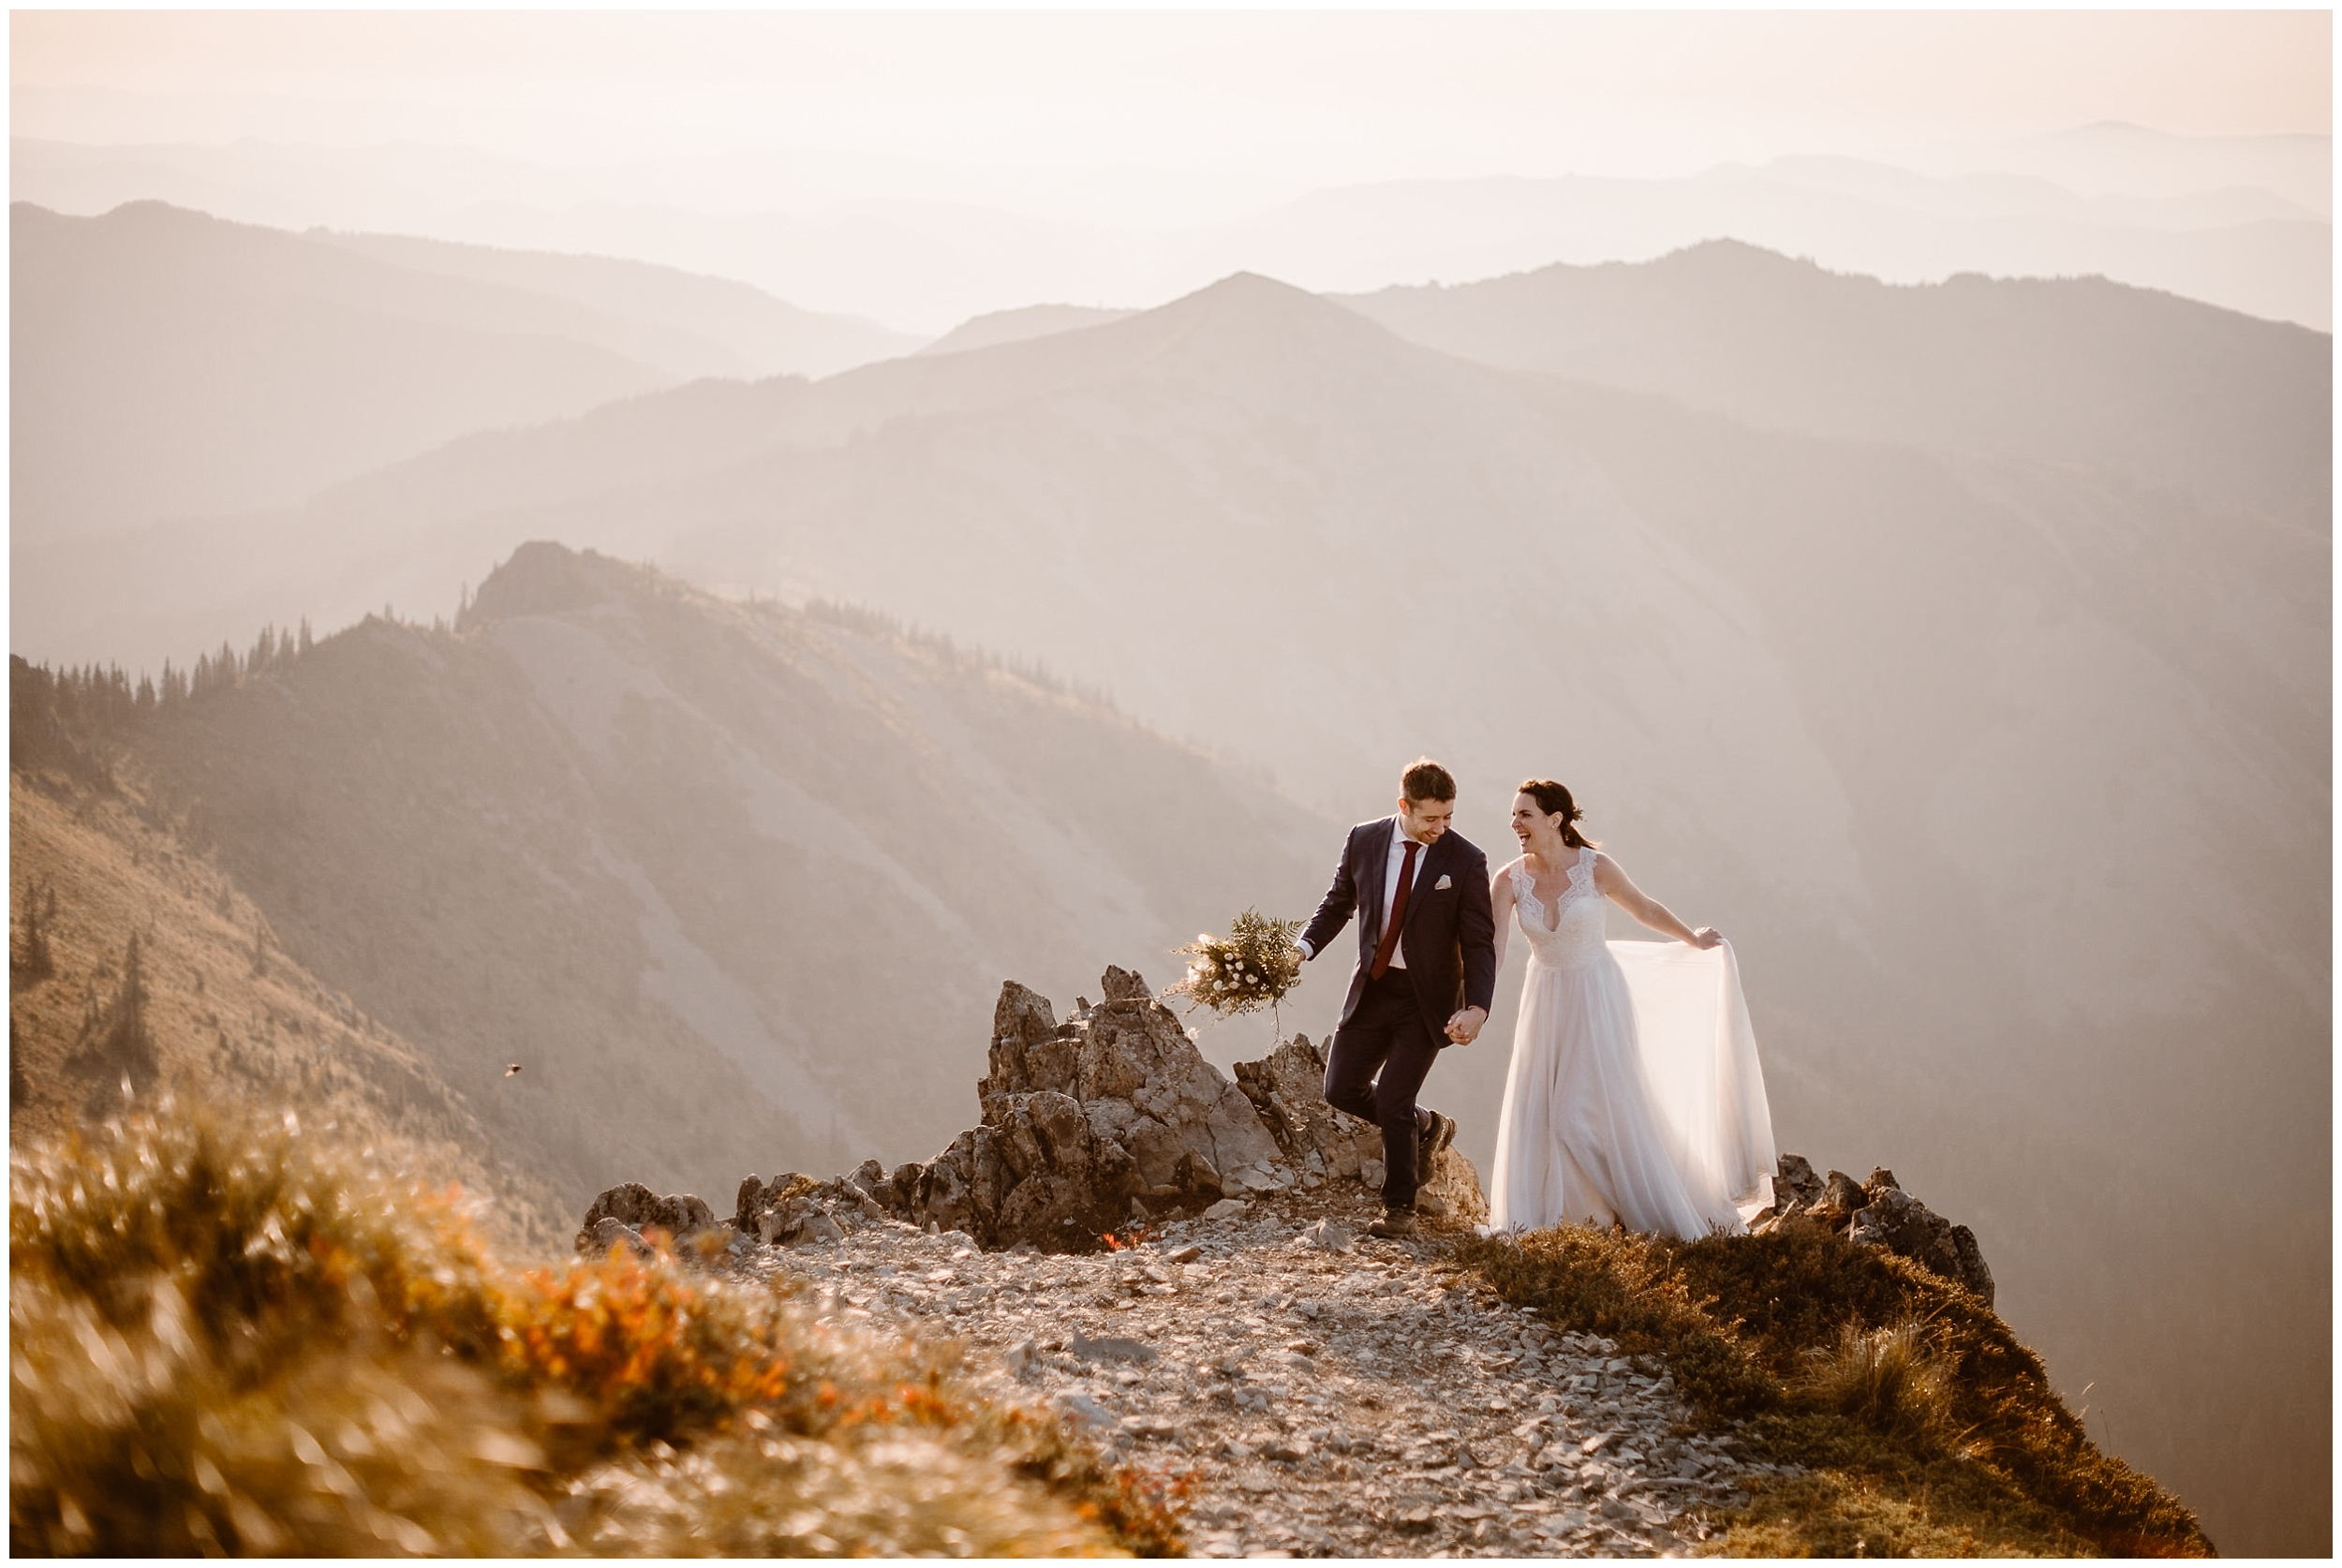 Lauryn and David hold hands as they stand at the edge of a the mountaintop during their sunrise elopement in Washington state. At the top of the mountain, there's a misty fog that surrounds Lauryn and David in their wedding clothes.